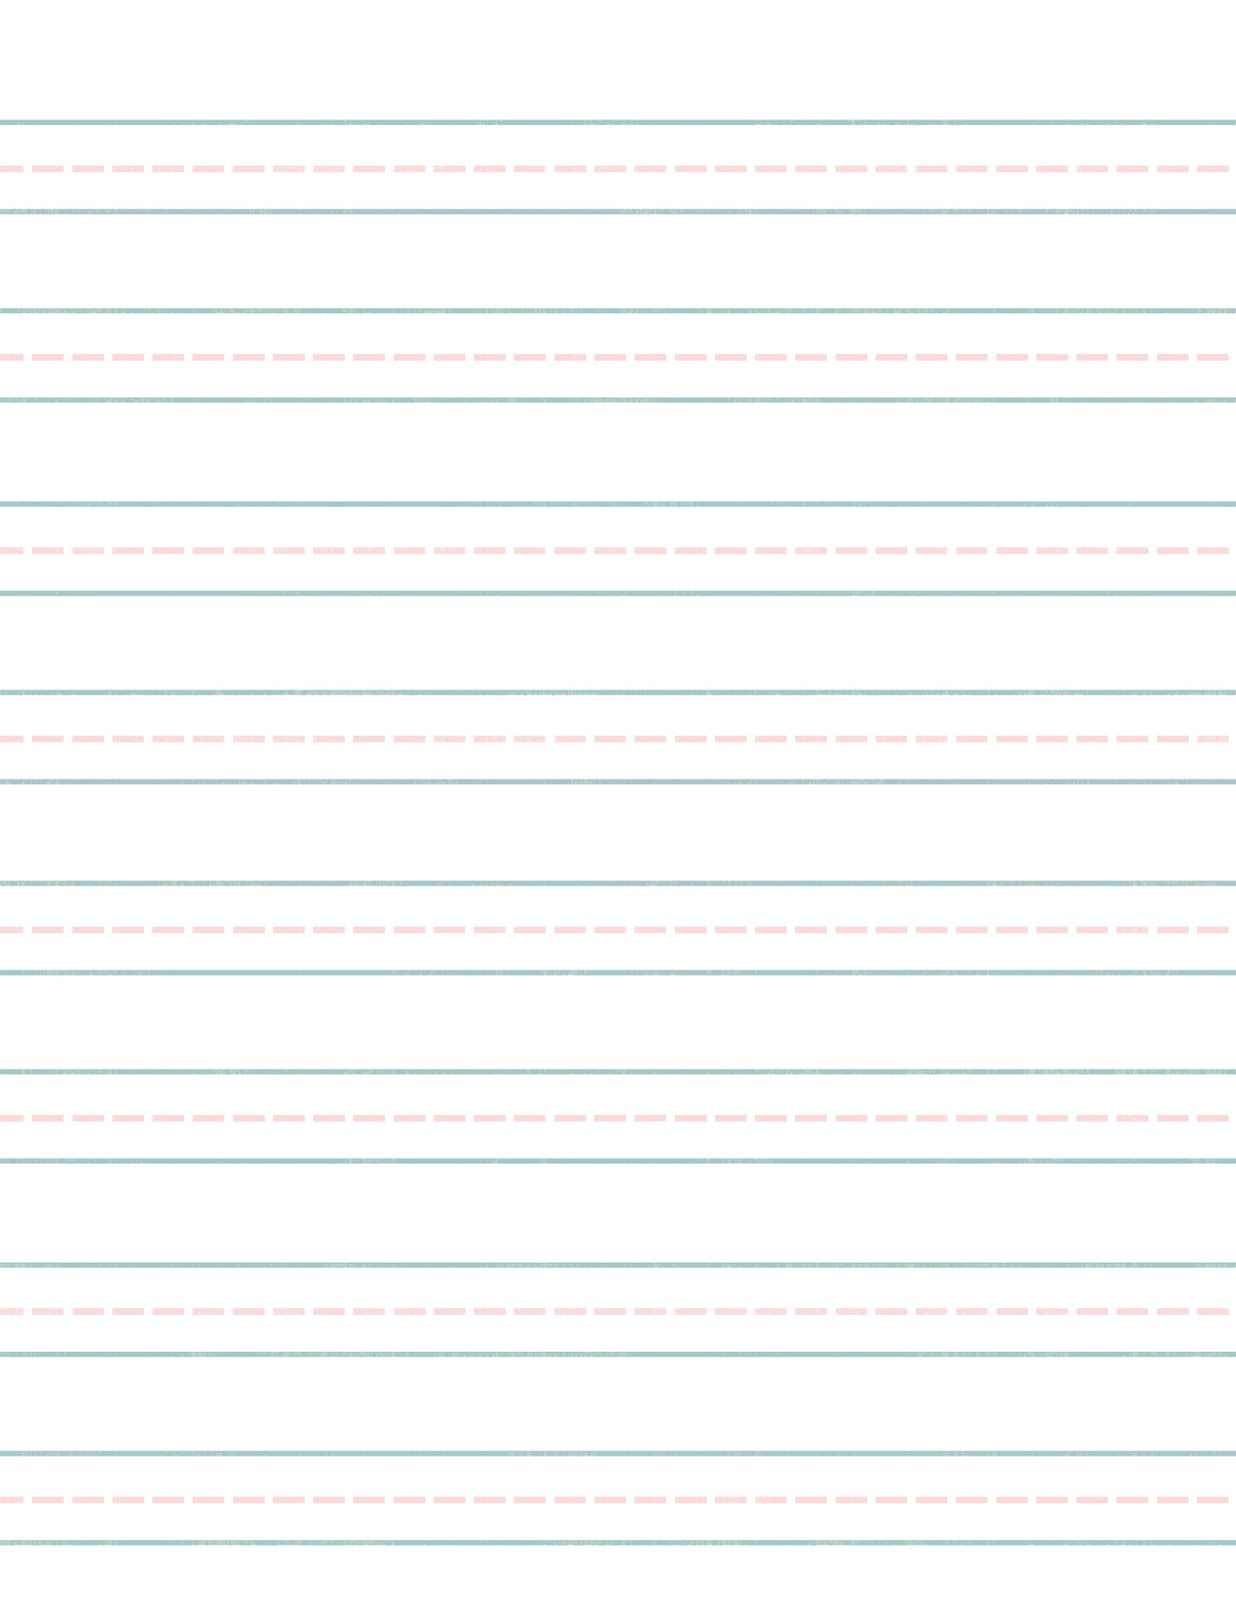 Handwriting Paper Template lesson plan template download property – Printable Writing Lines